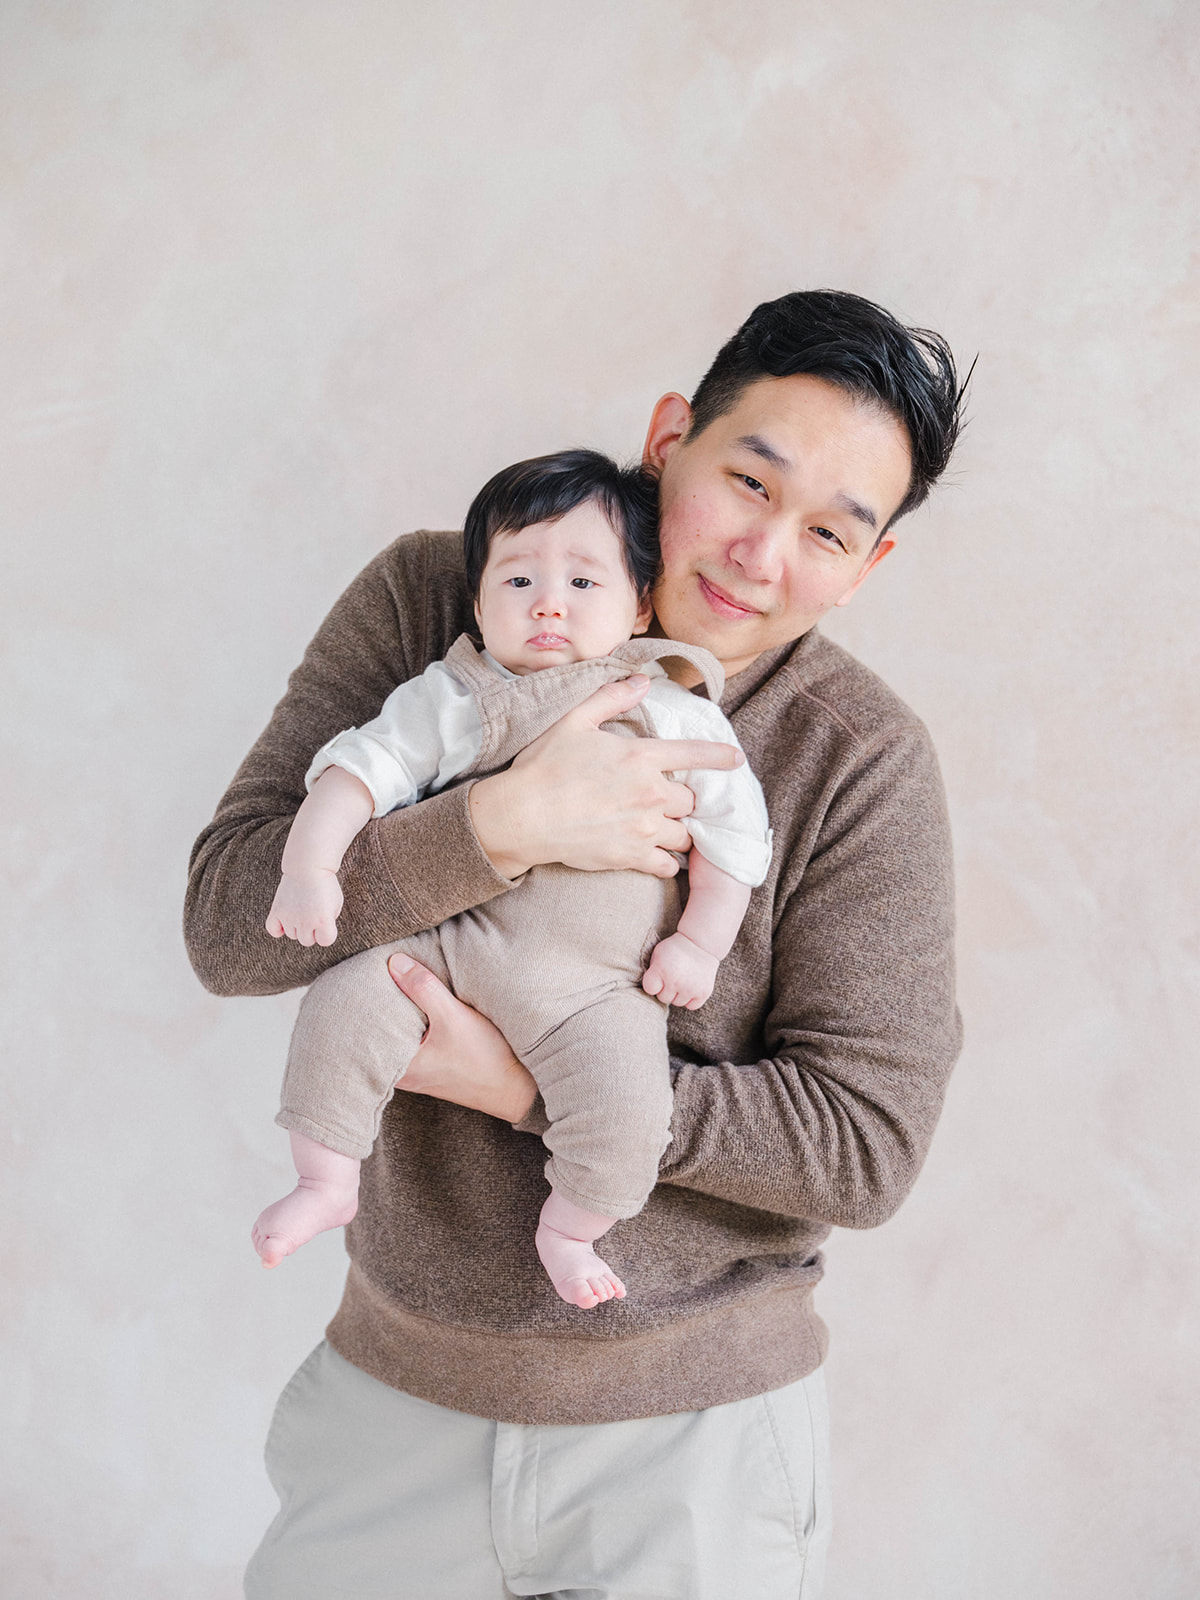 dad holding baby in front of him and facing camera